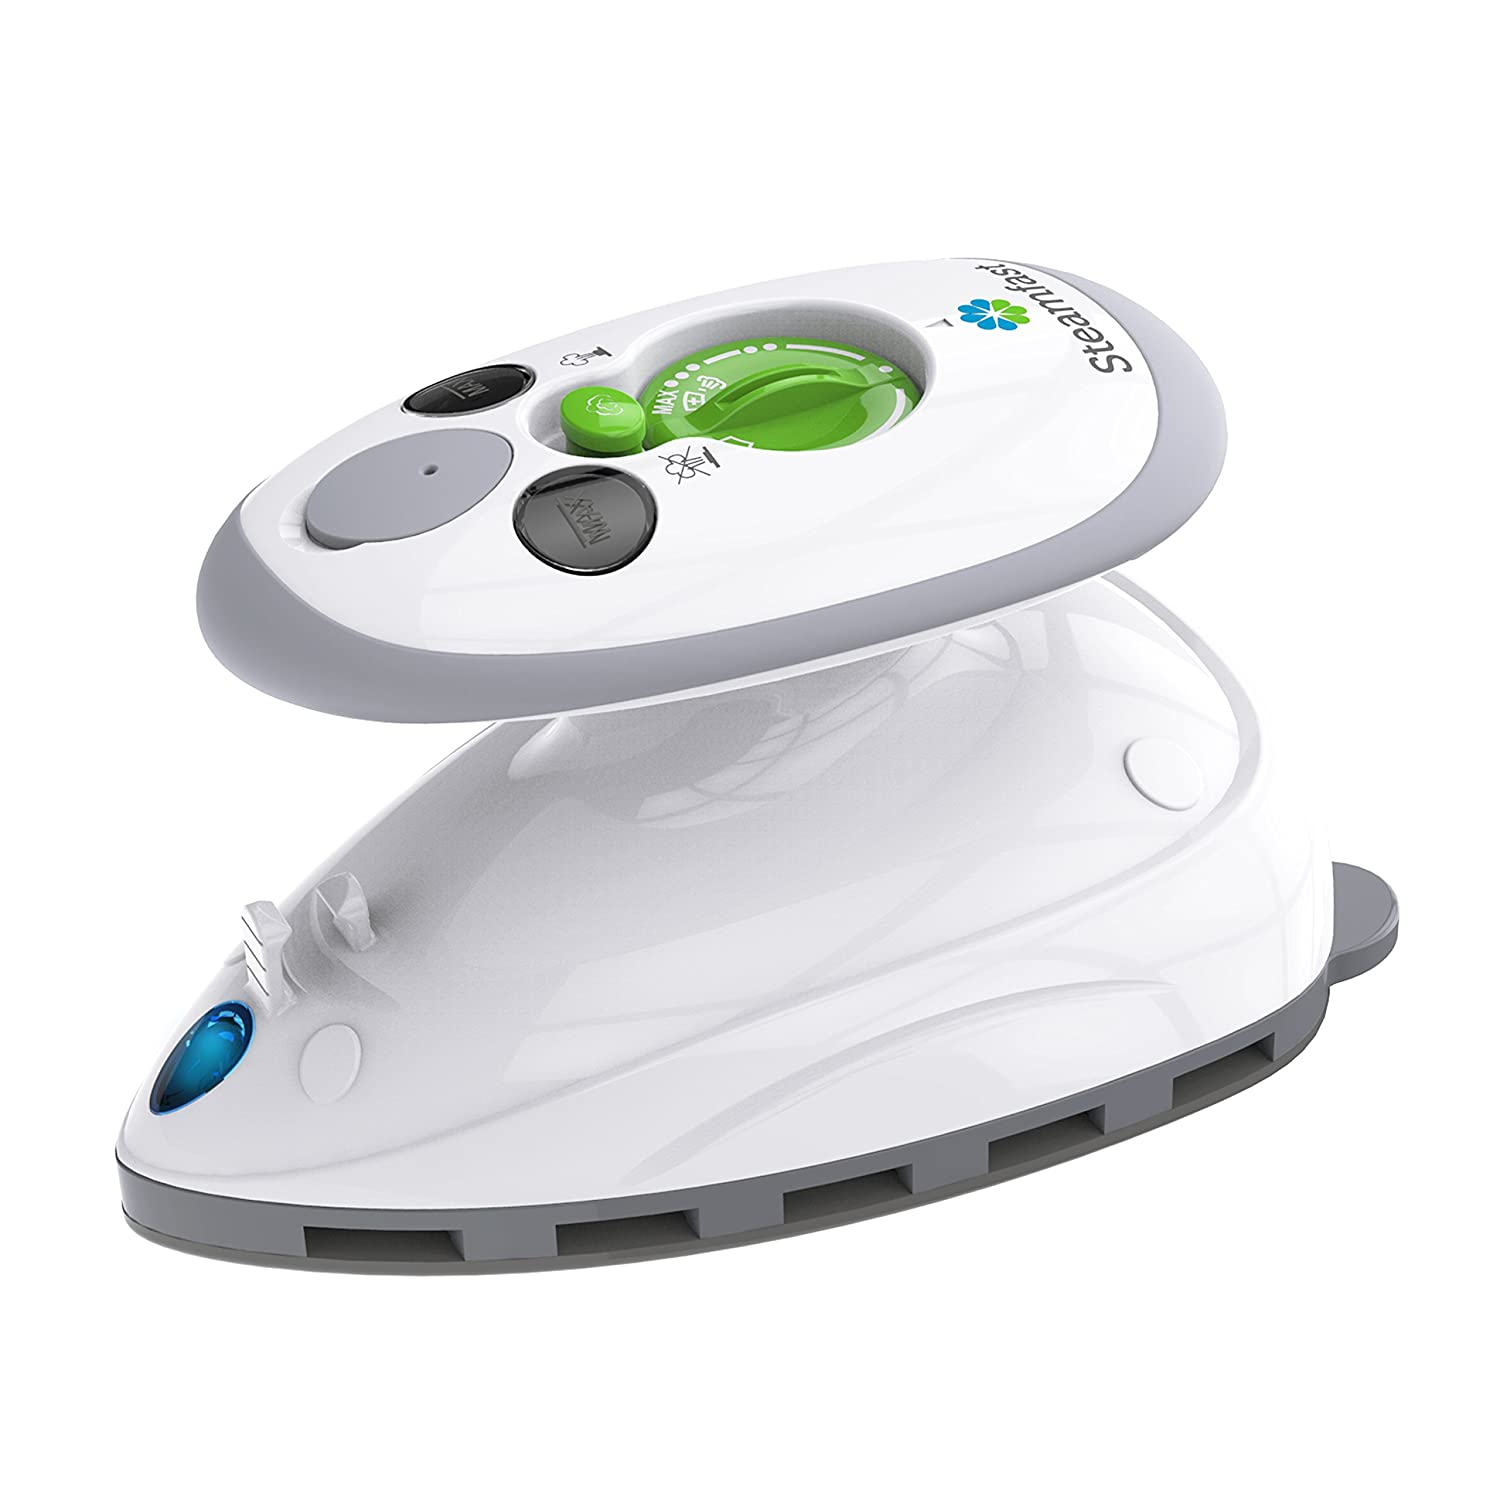 Steamfast SF-717 Home-and-Away Mini Steam Iron Vornado Air